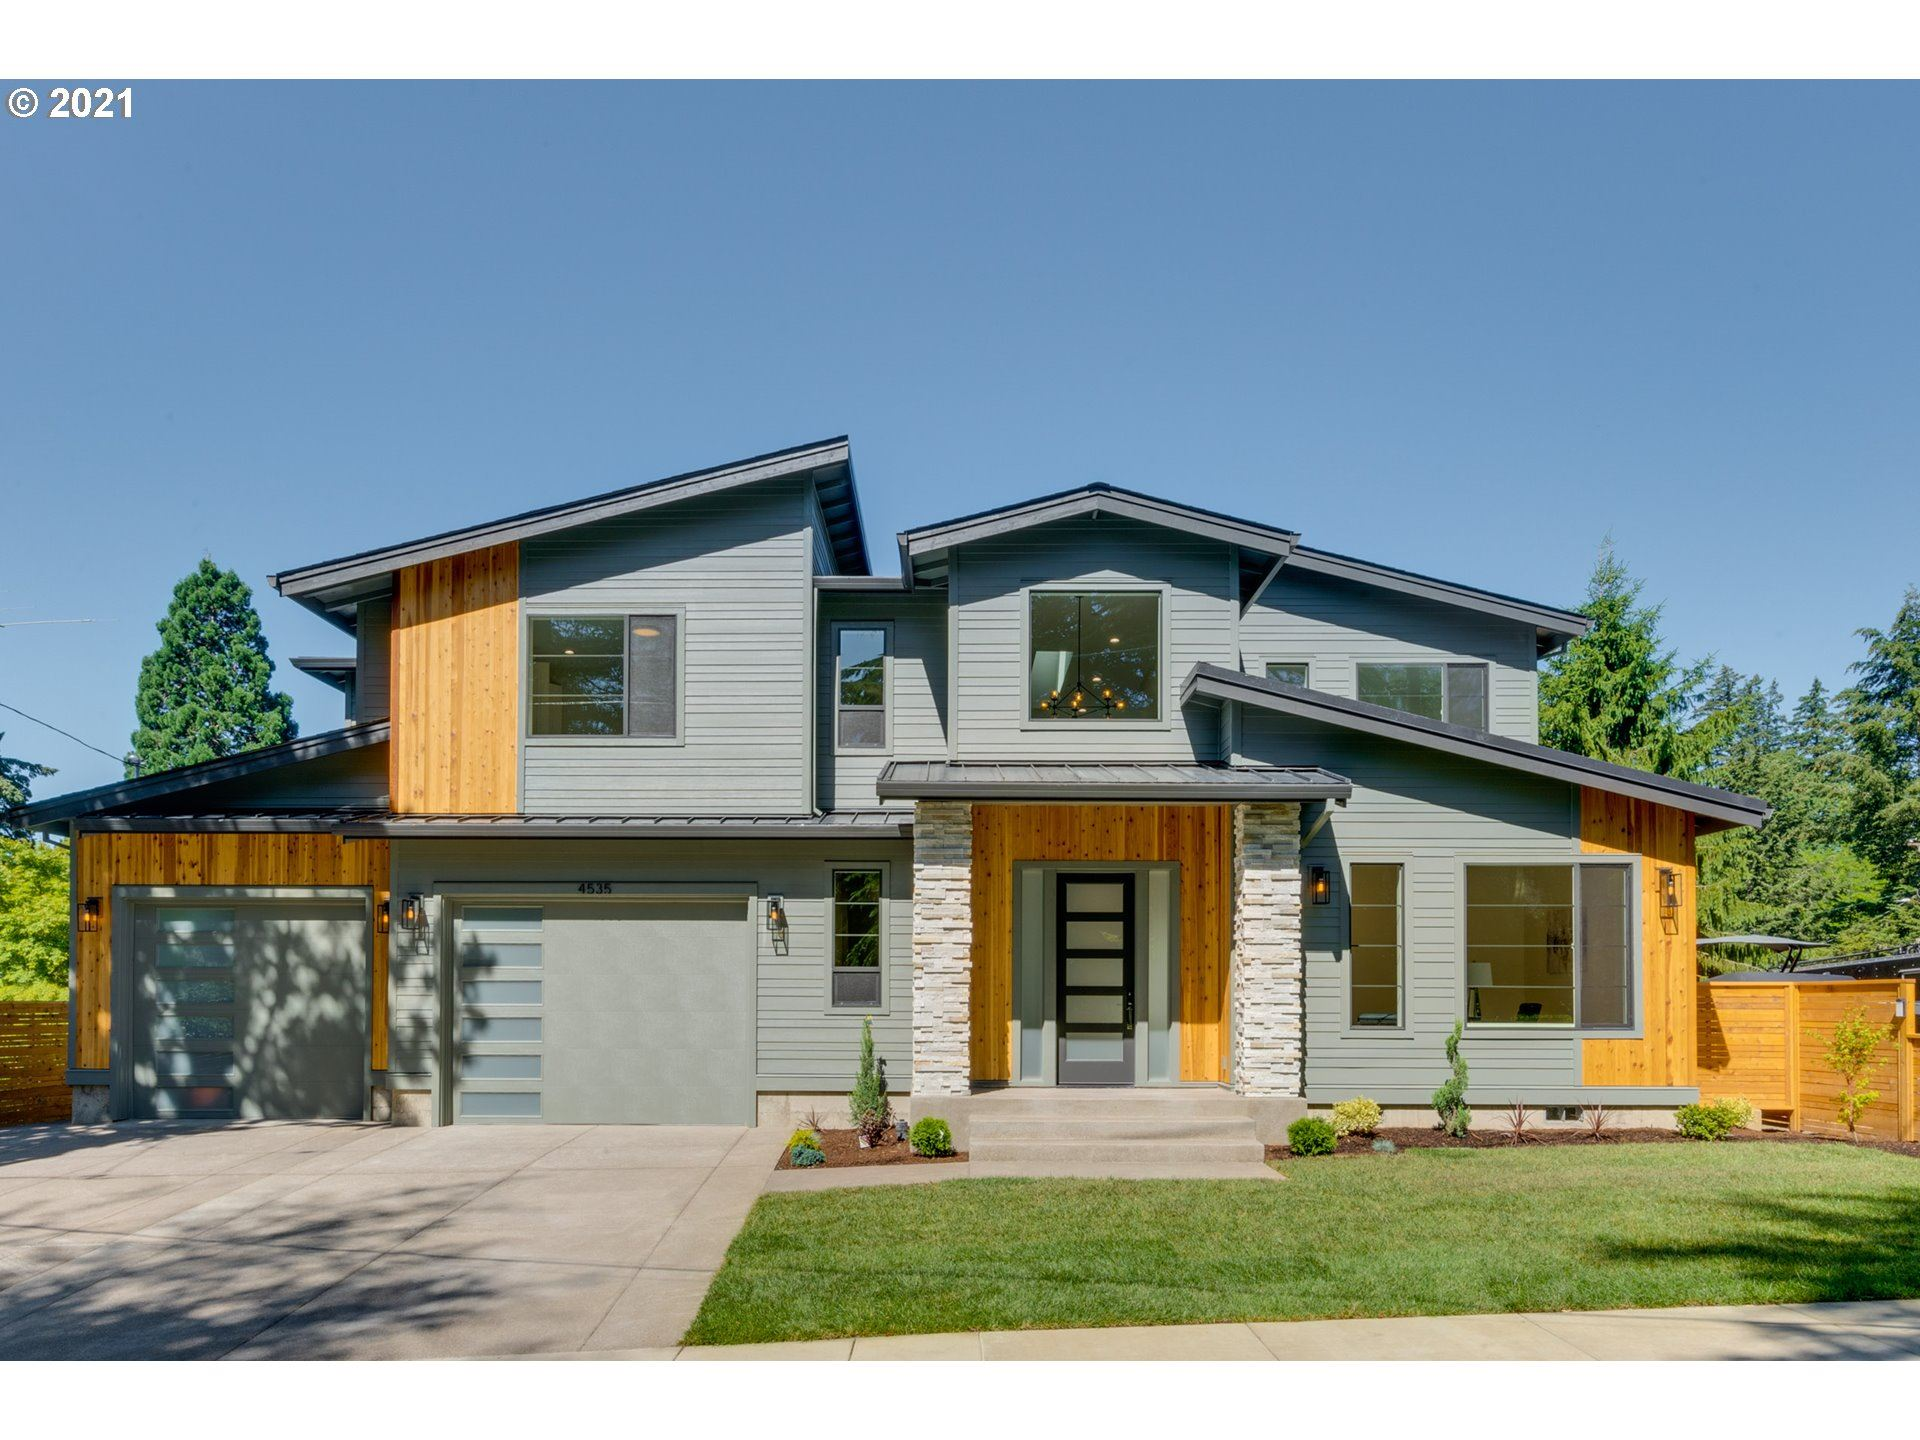 4535 SW 53RD AVE, Portland, OR 97221 - MLS#: 21278489